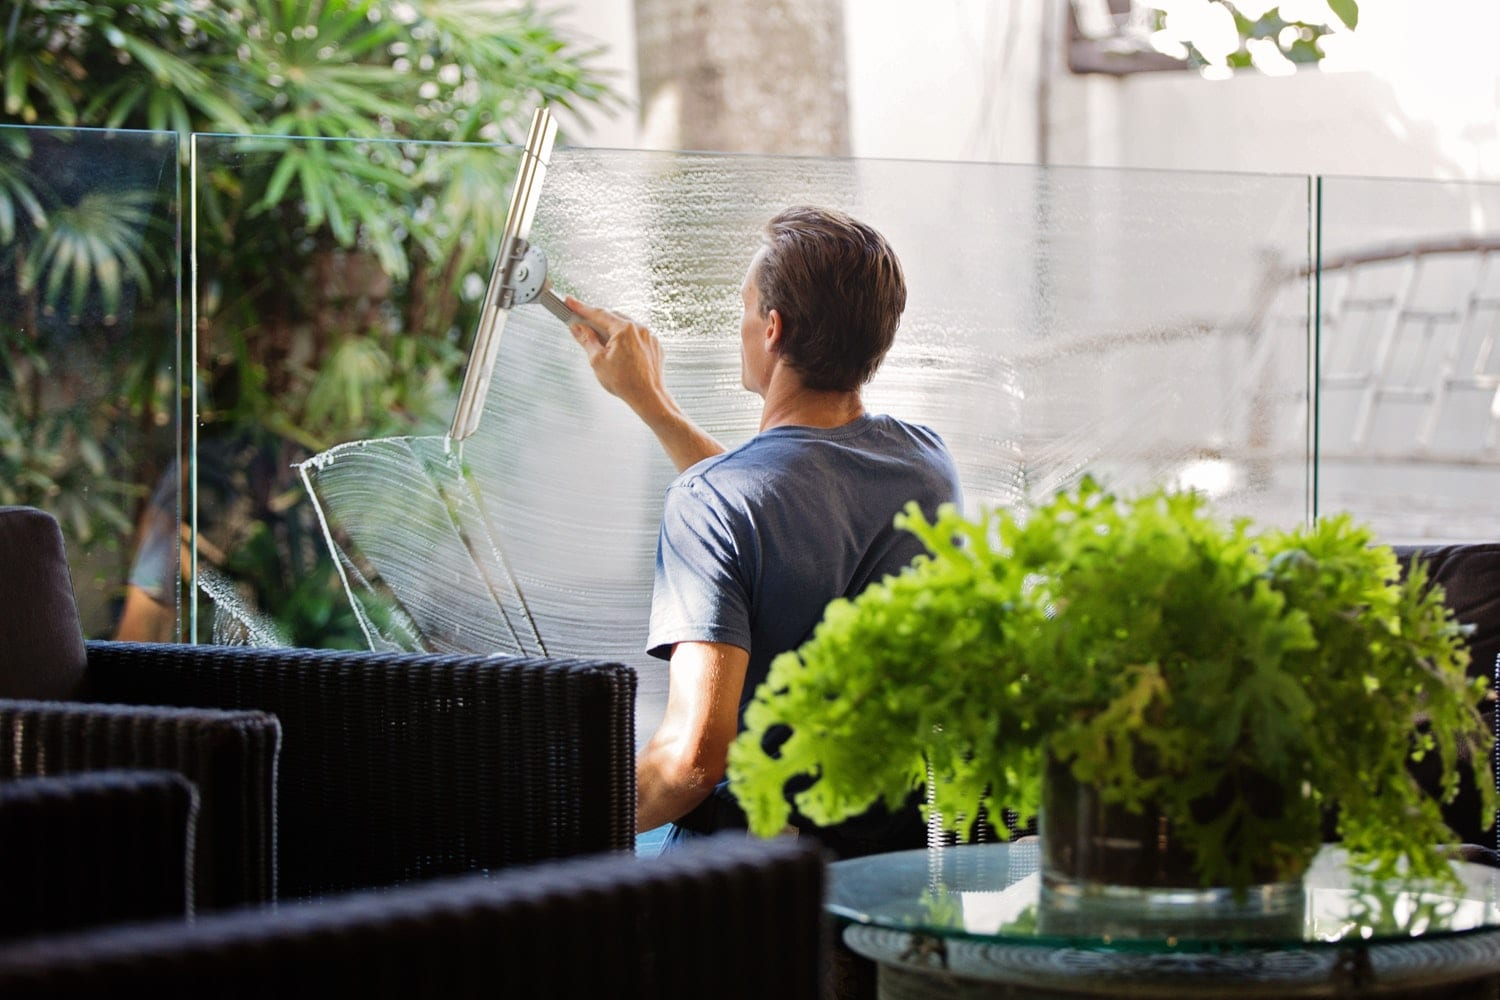 Man cleaning window